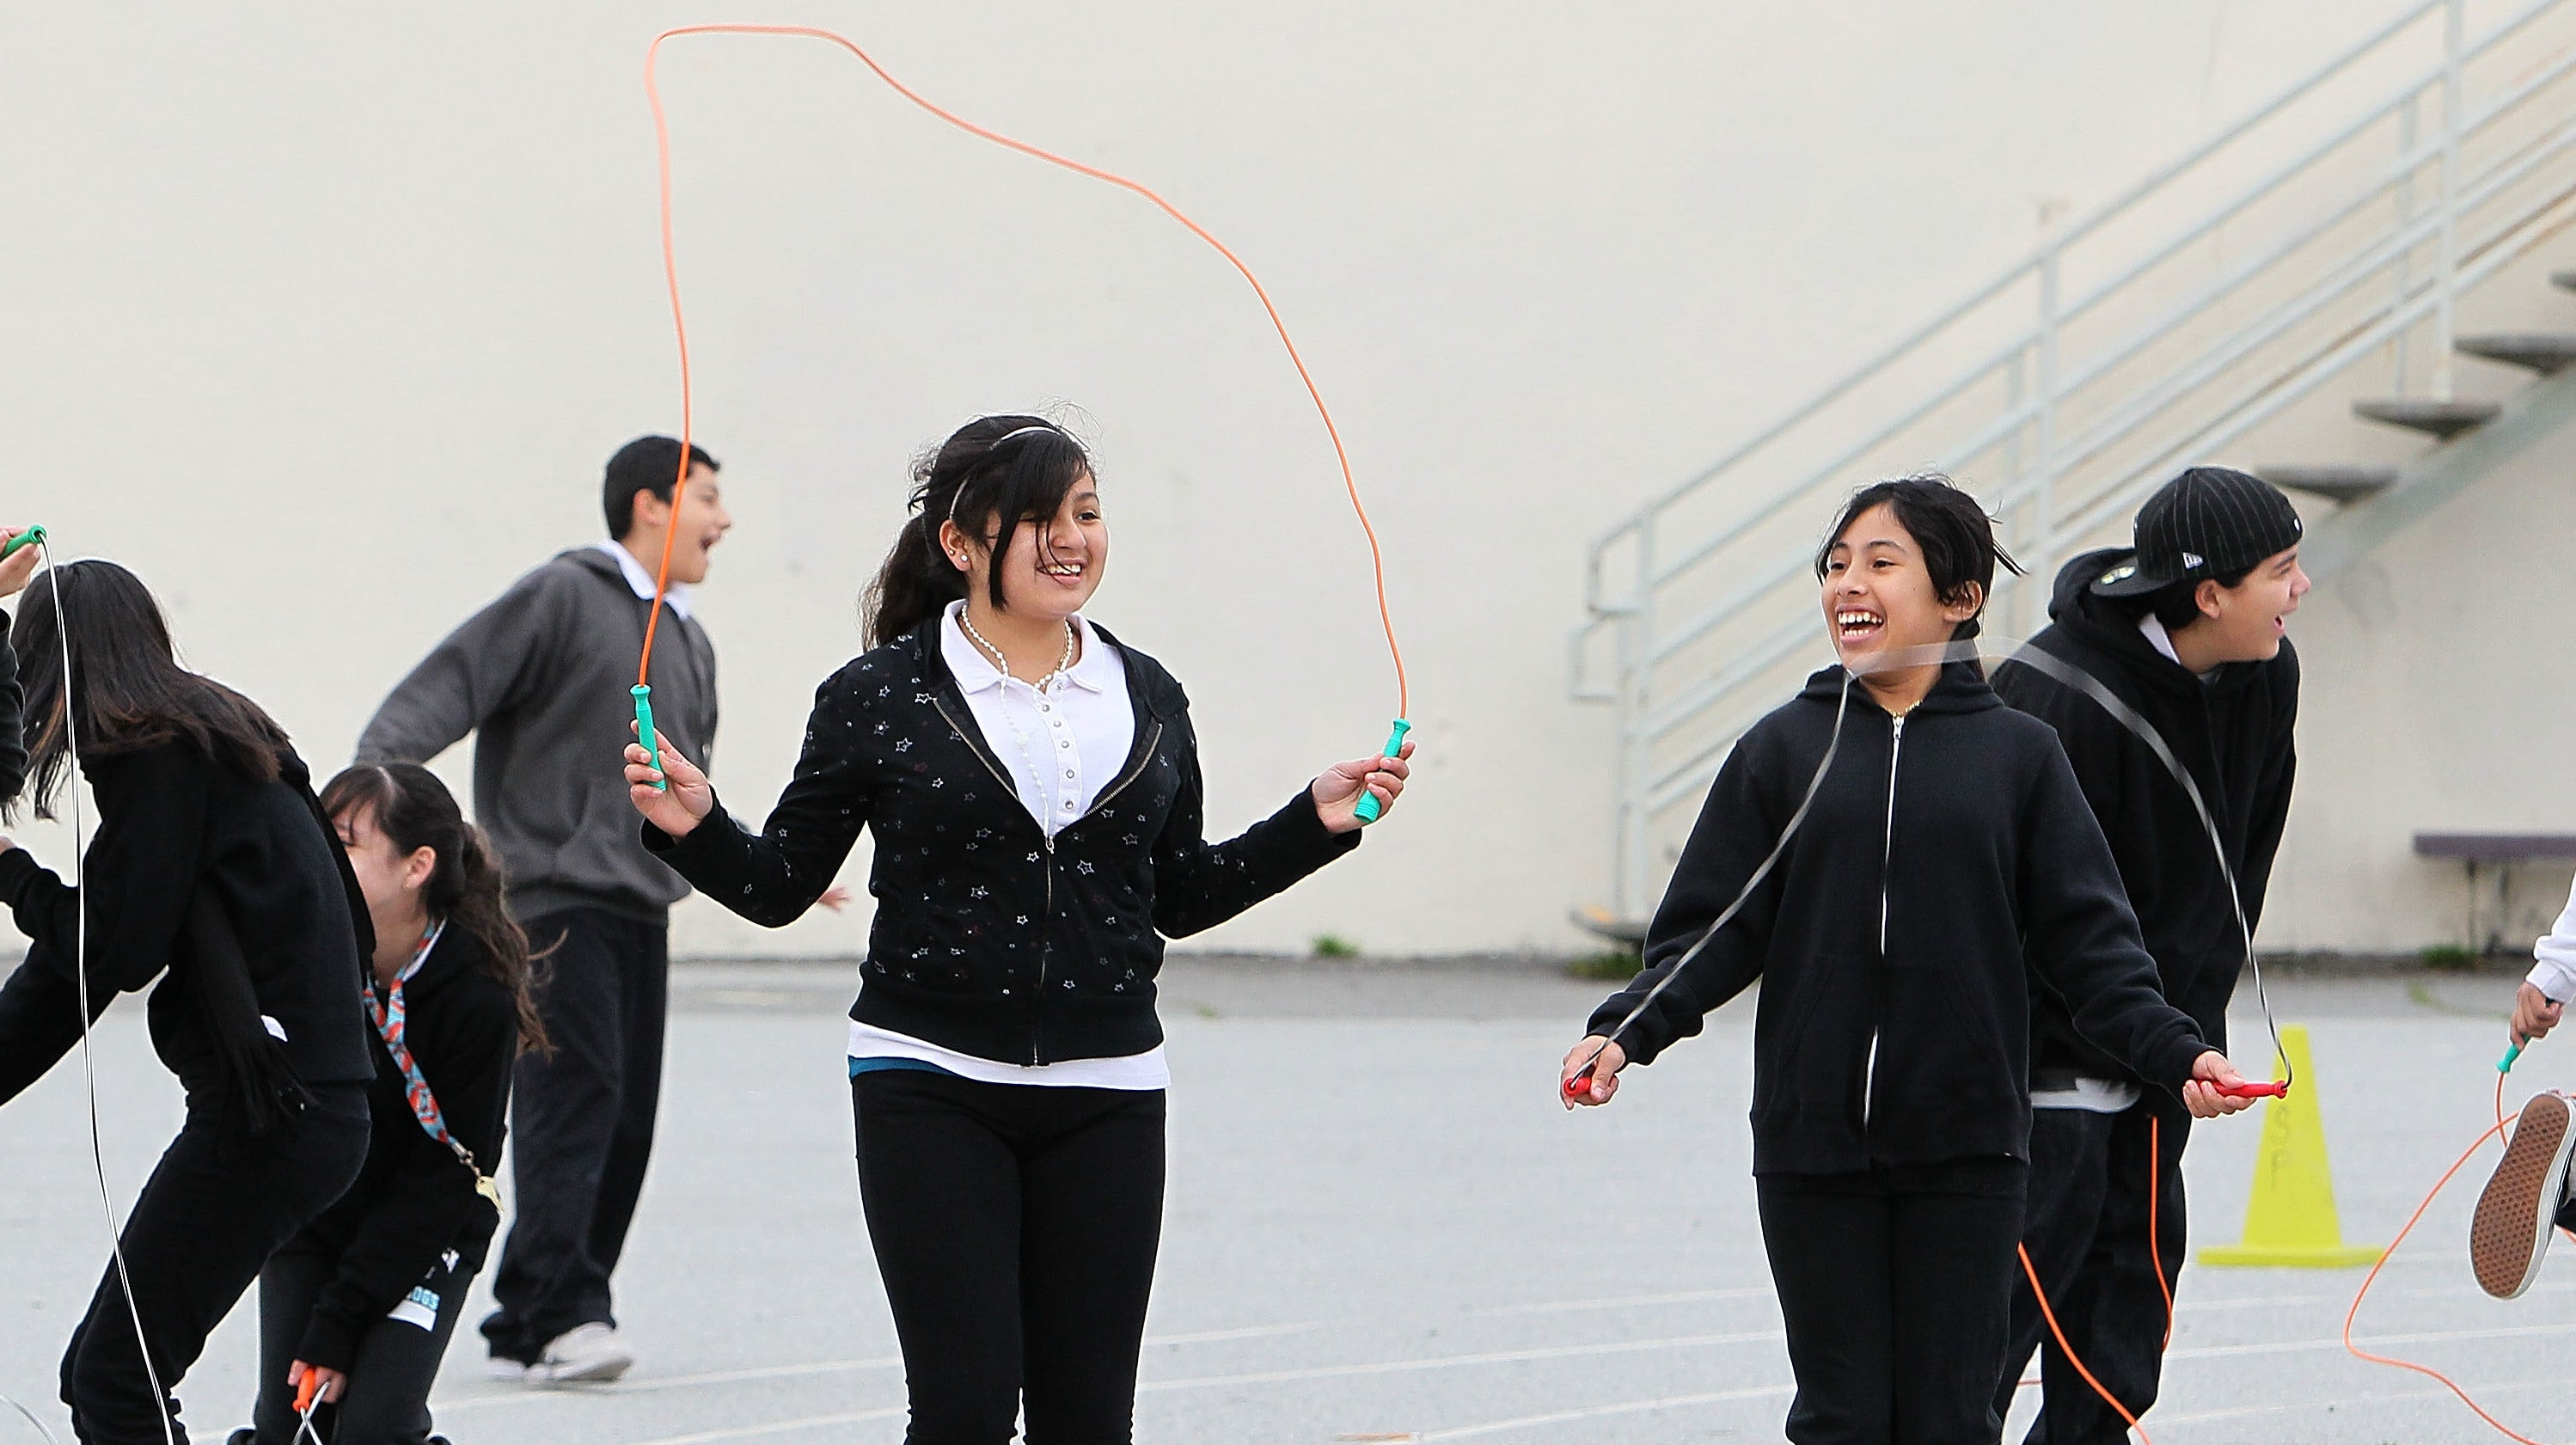 How To Learn Skipping Rope Double Unders